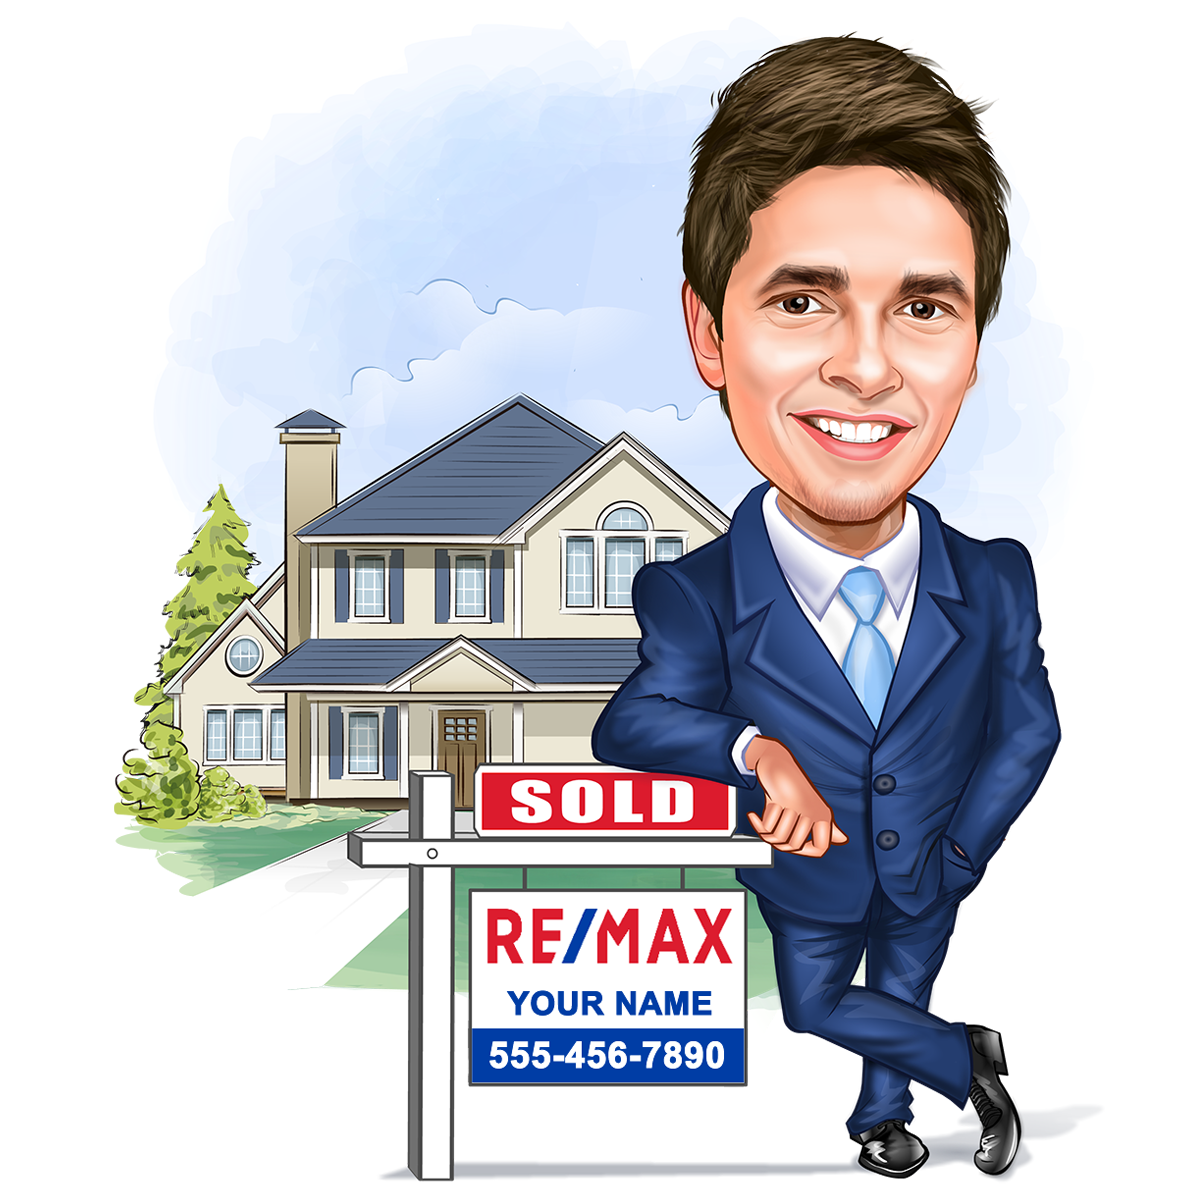 Pin On Real Estate Ads